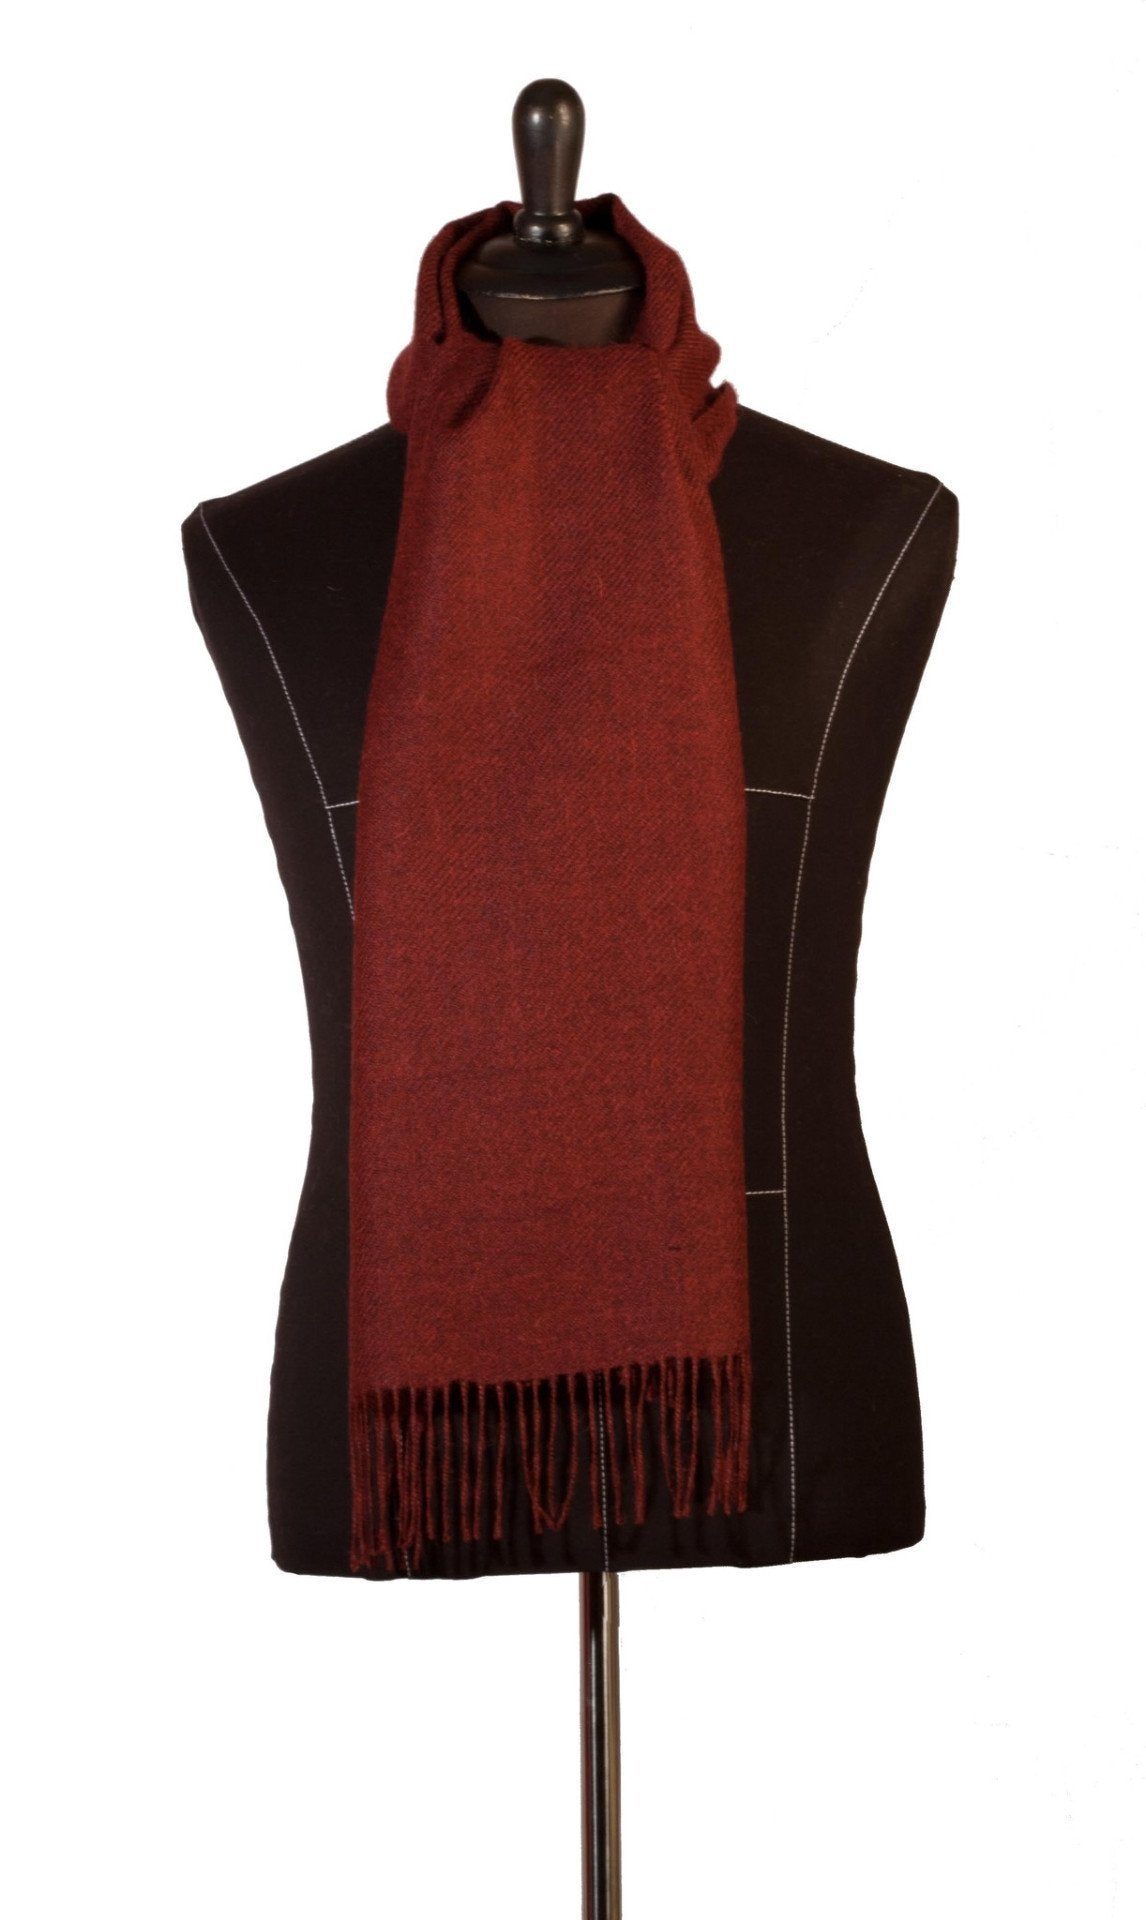 100% Baby Alpaca Woven Scarf - Melange Crimson Red - Qinti - The Peruvian Shop